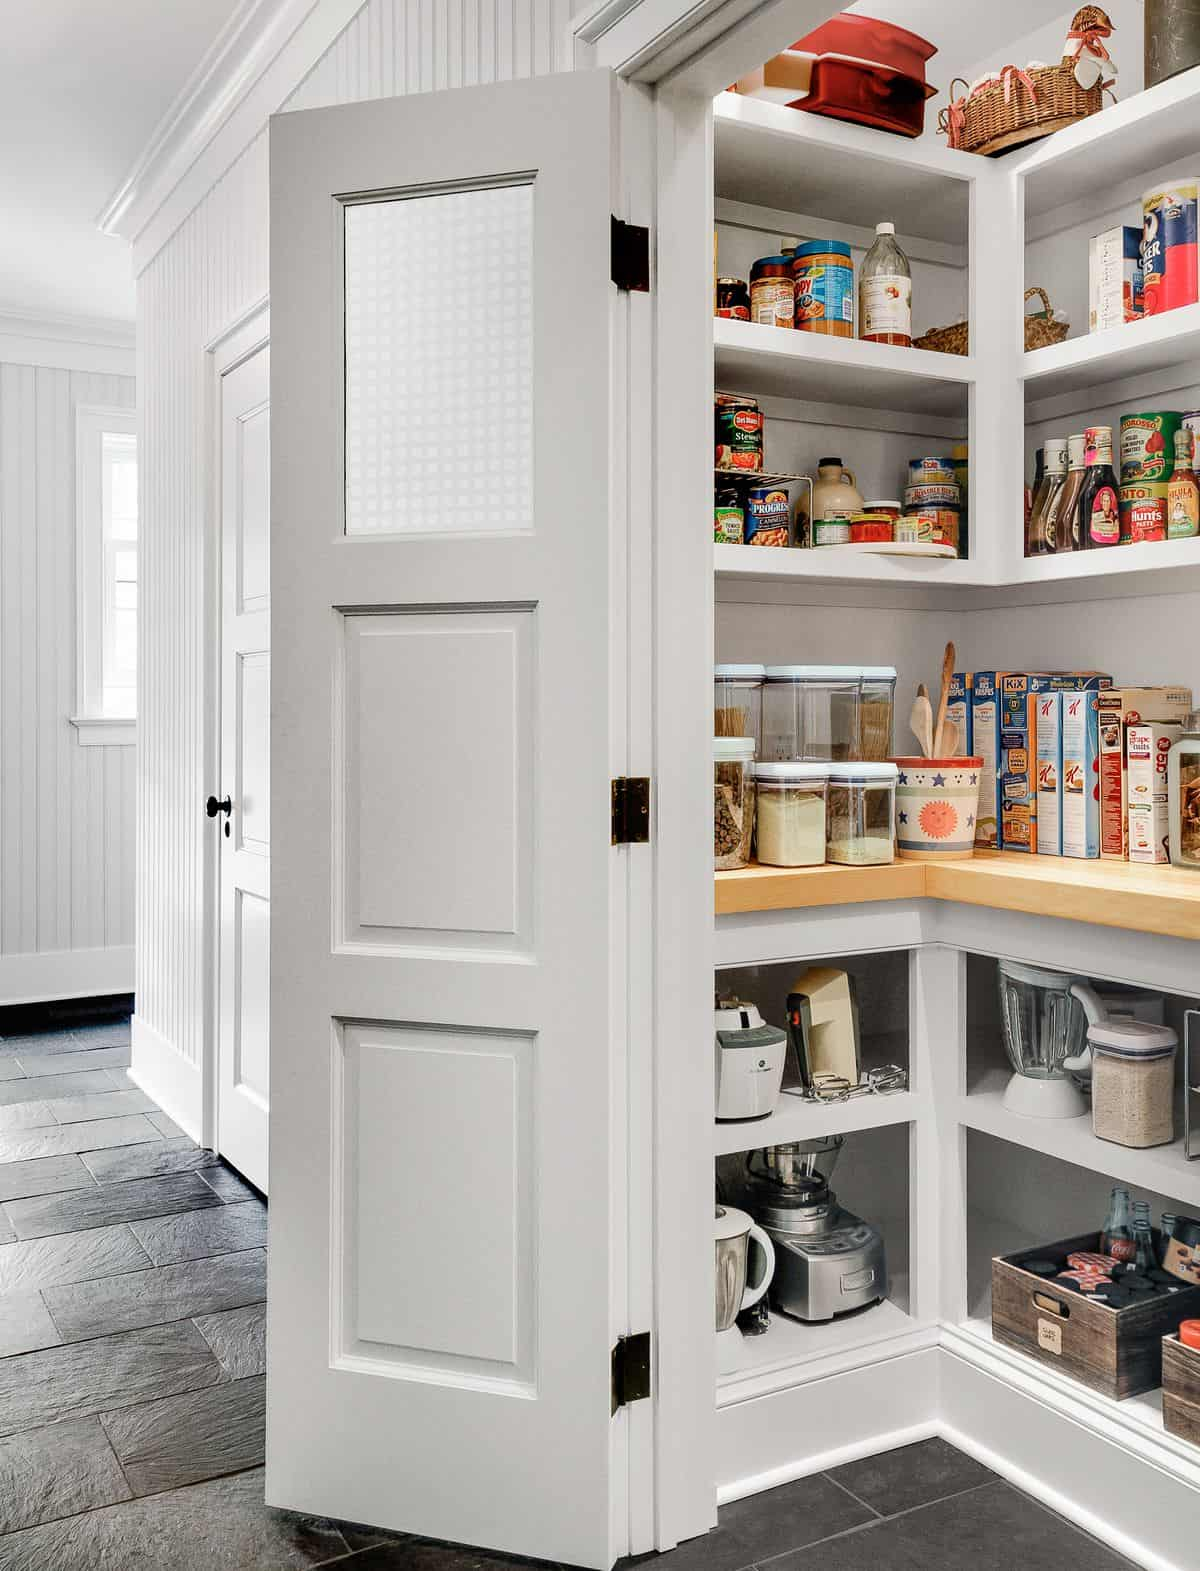 Tips for selecting the right kind of pantry shelving for your space